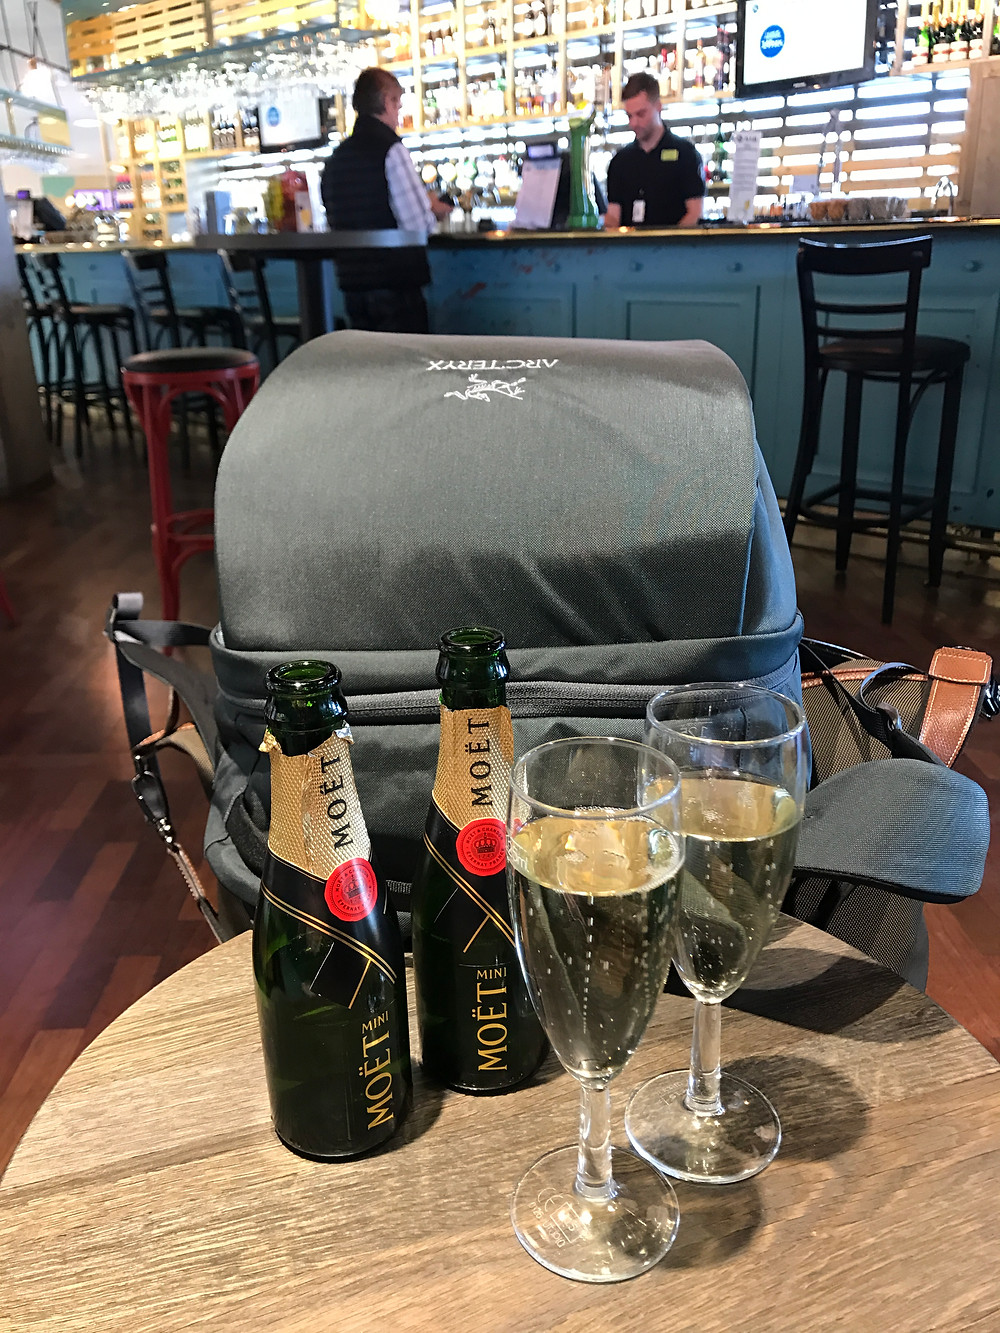 Celebrating Sticks & Spoons first official travels together! With our new Arcteryx Backpack and Champagne of course!